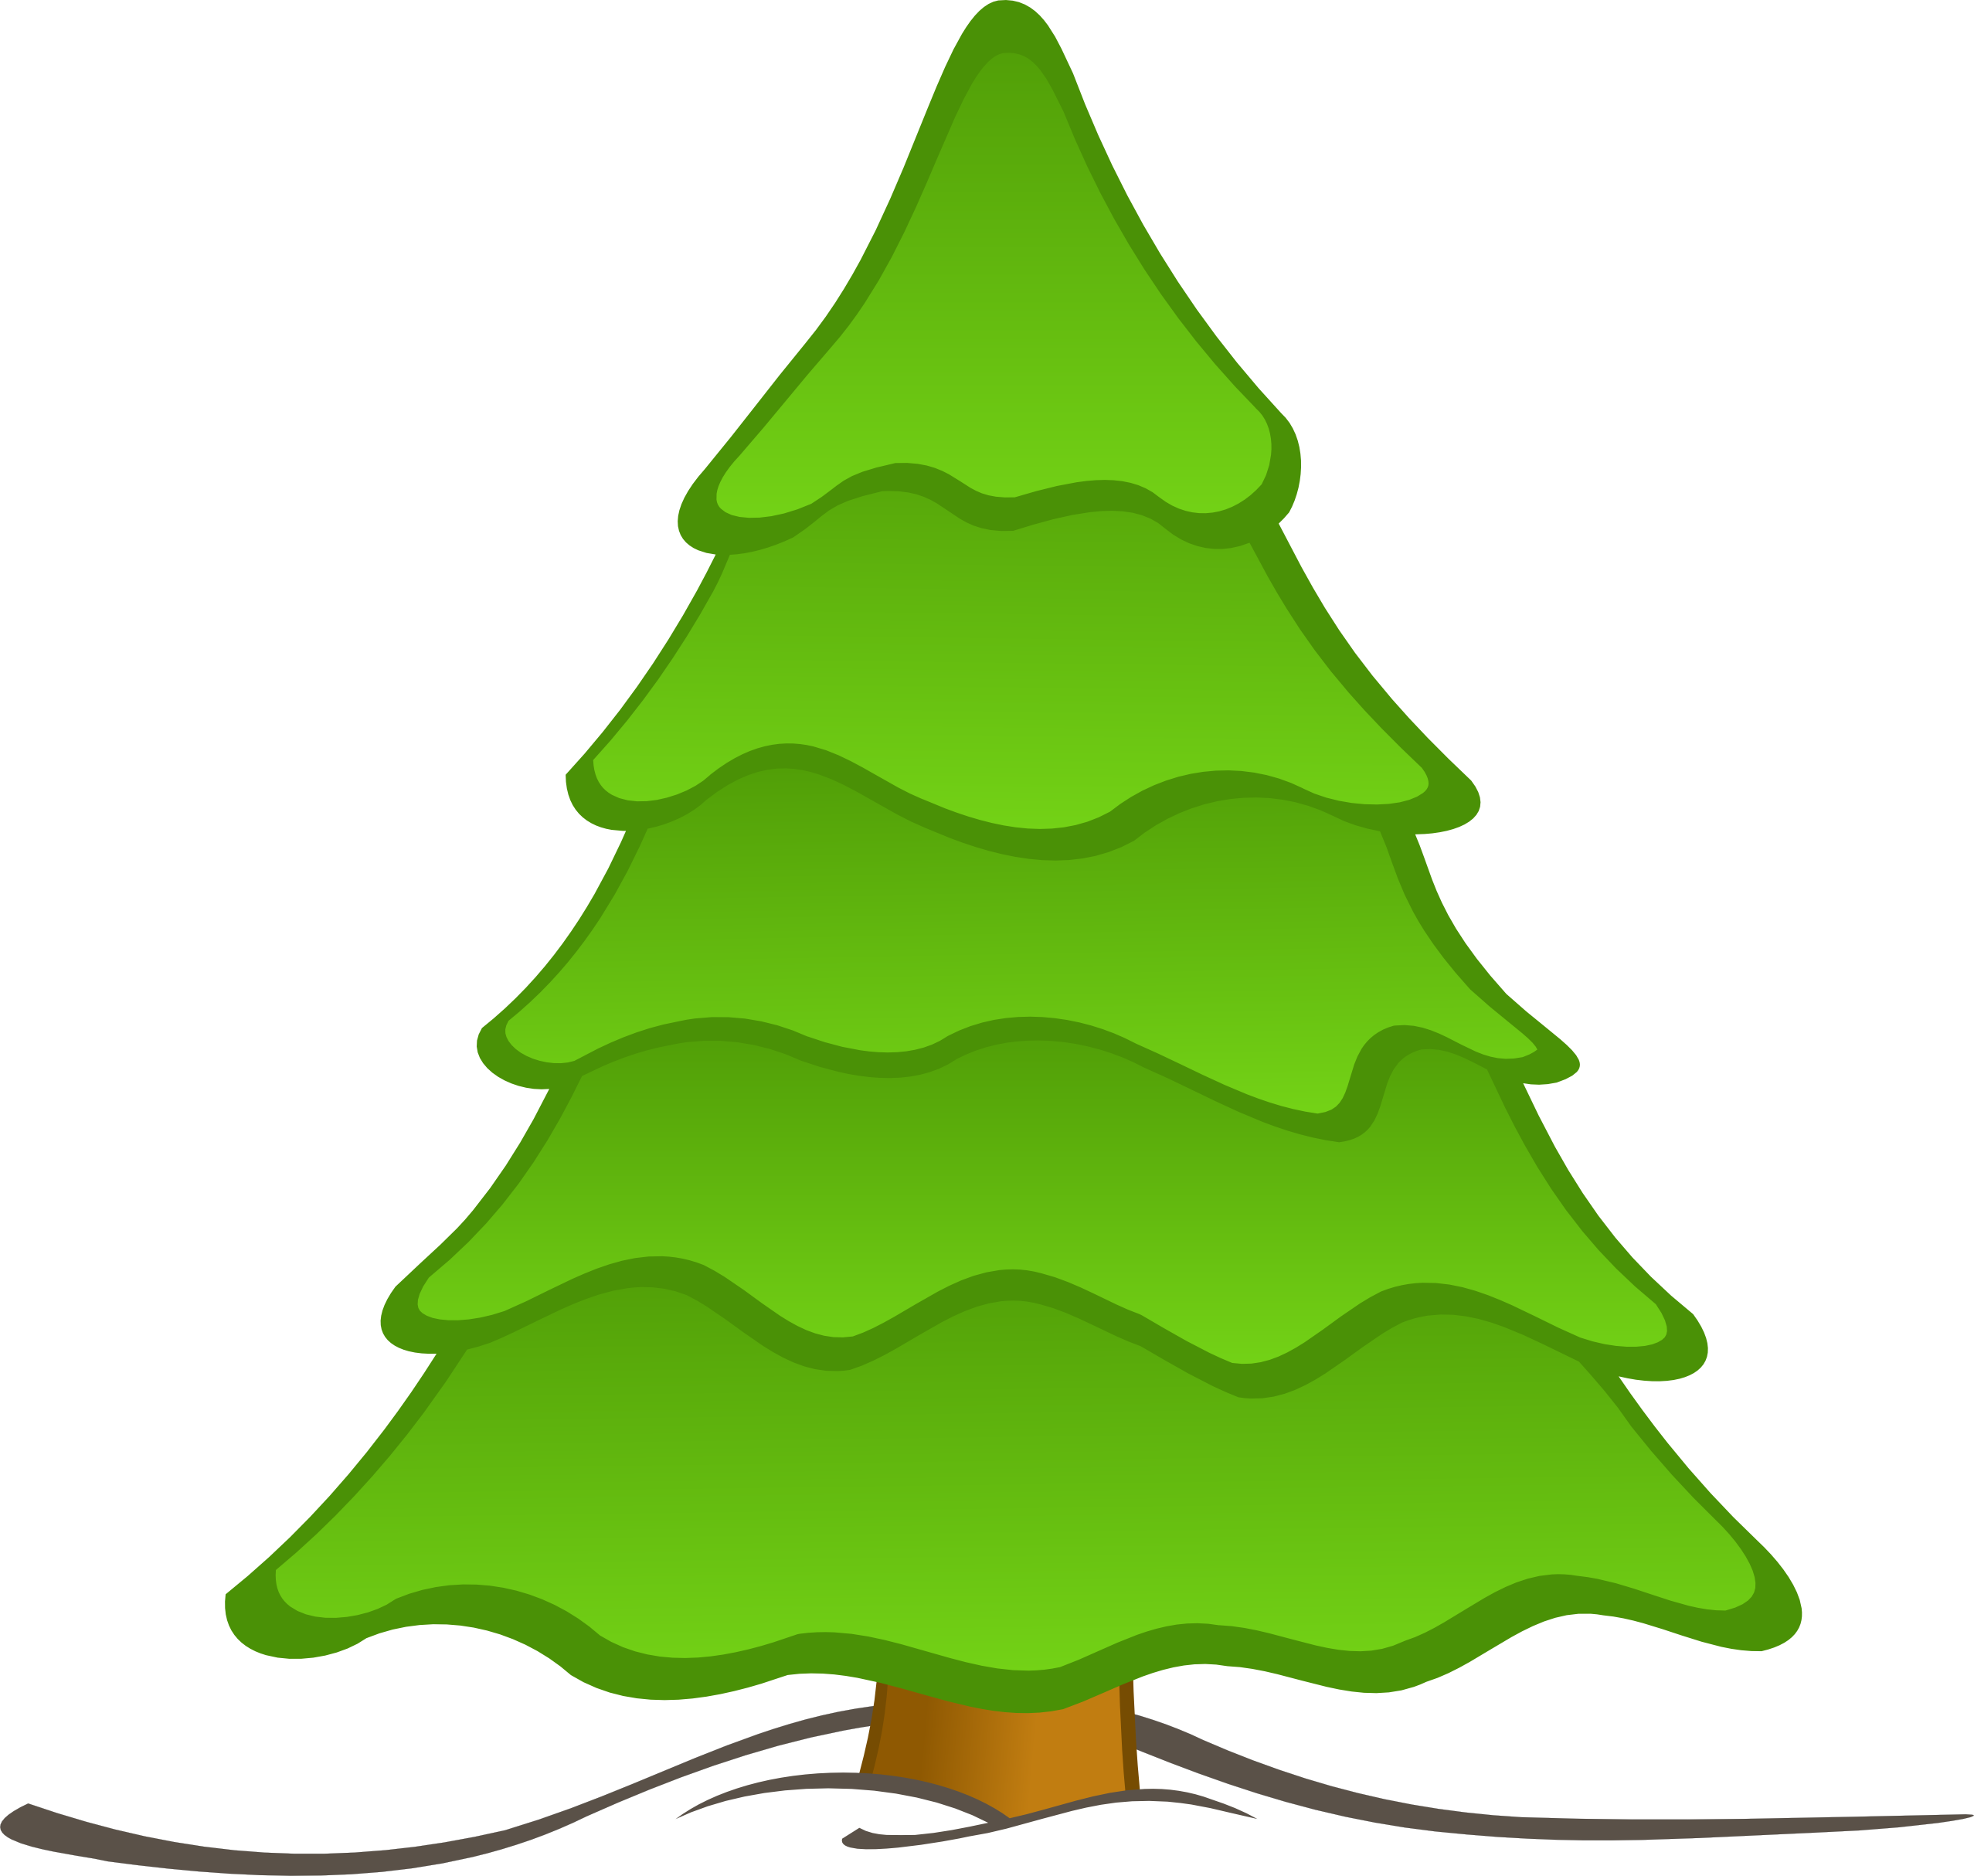 collection of plain. Tree clipart base